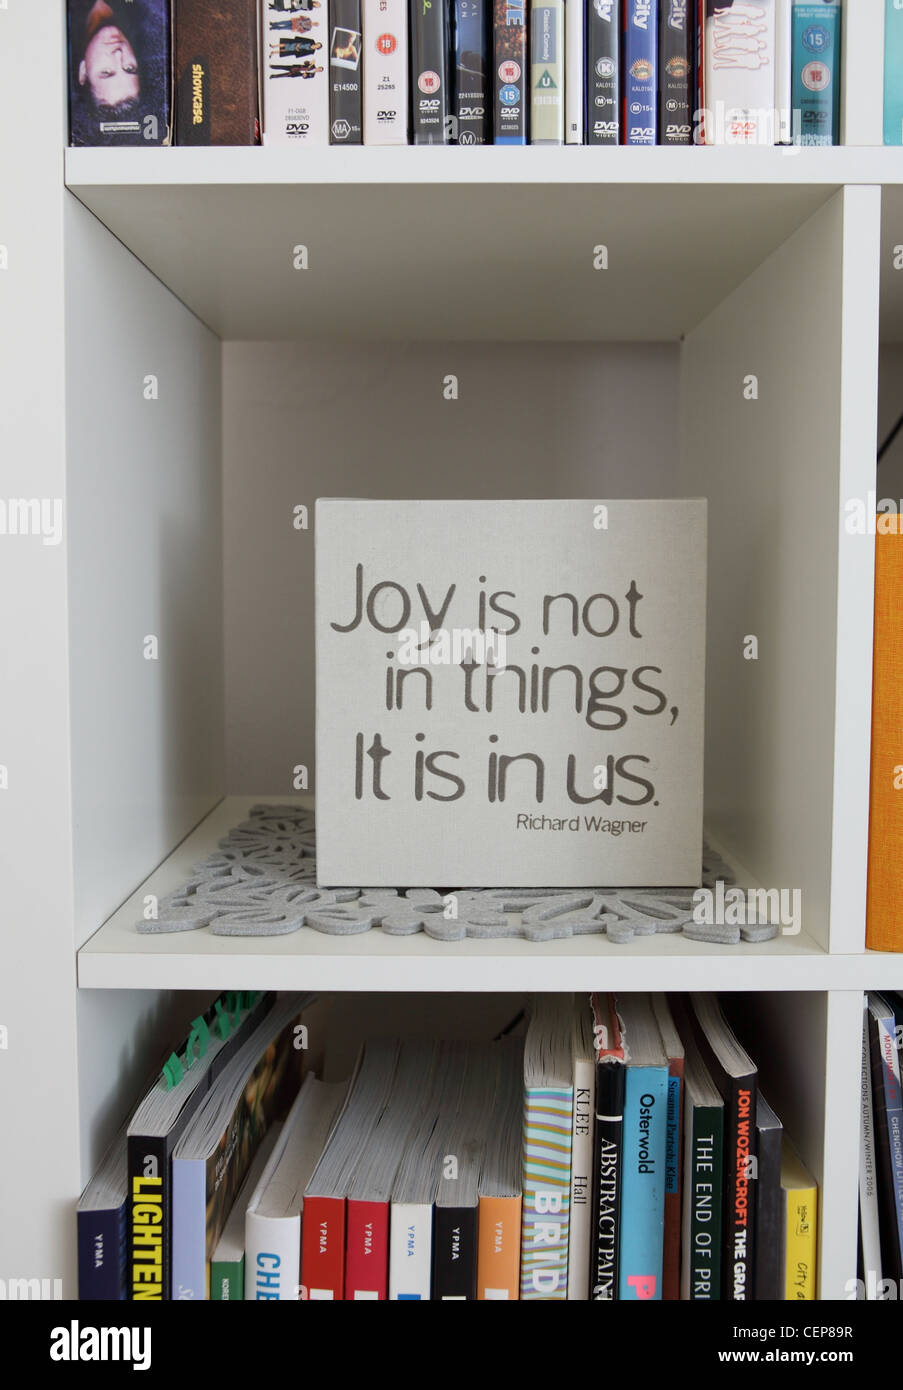 Apartment in Sydney Joy is not in things, it is in us sign on squared book shelf - Stock Image